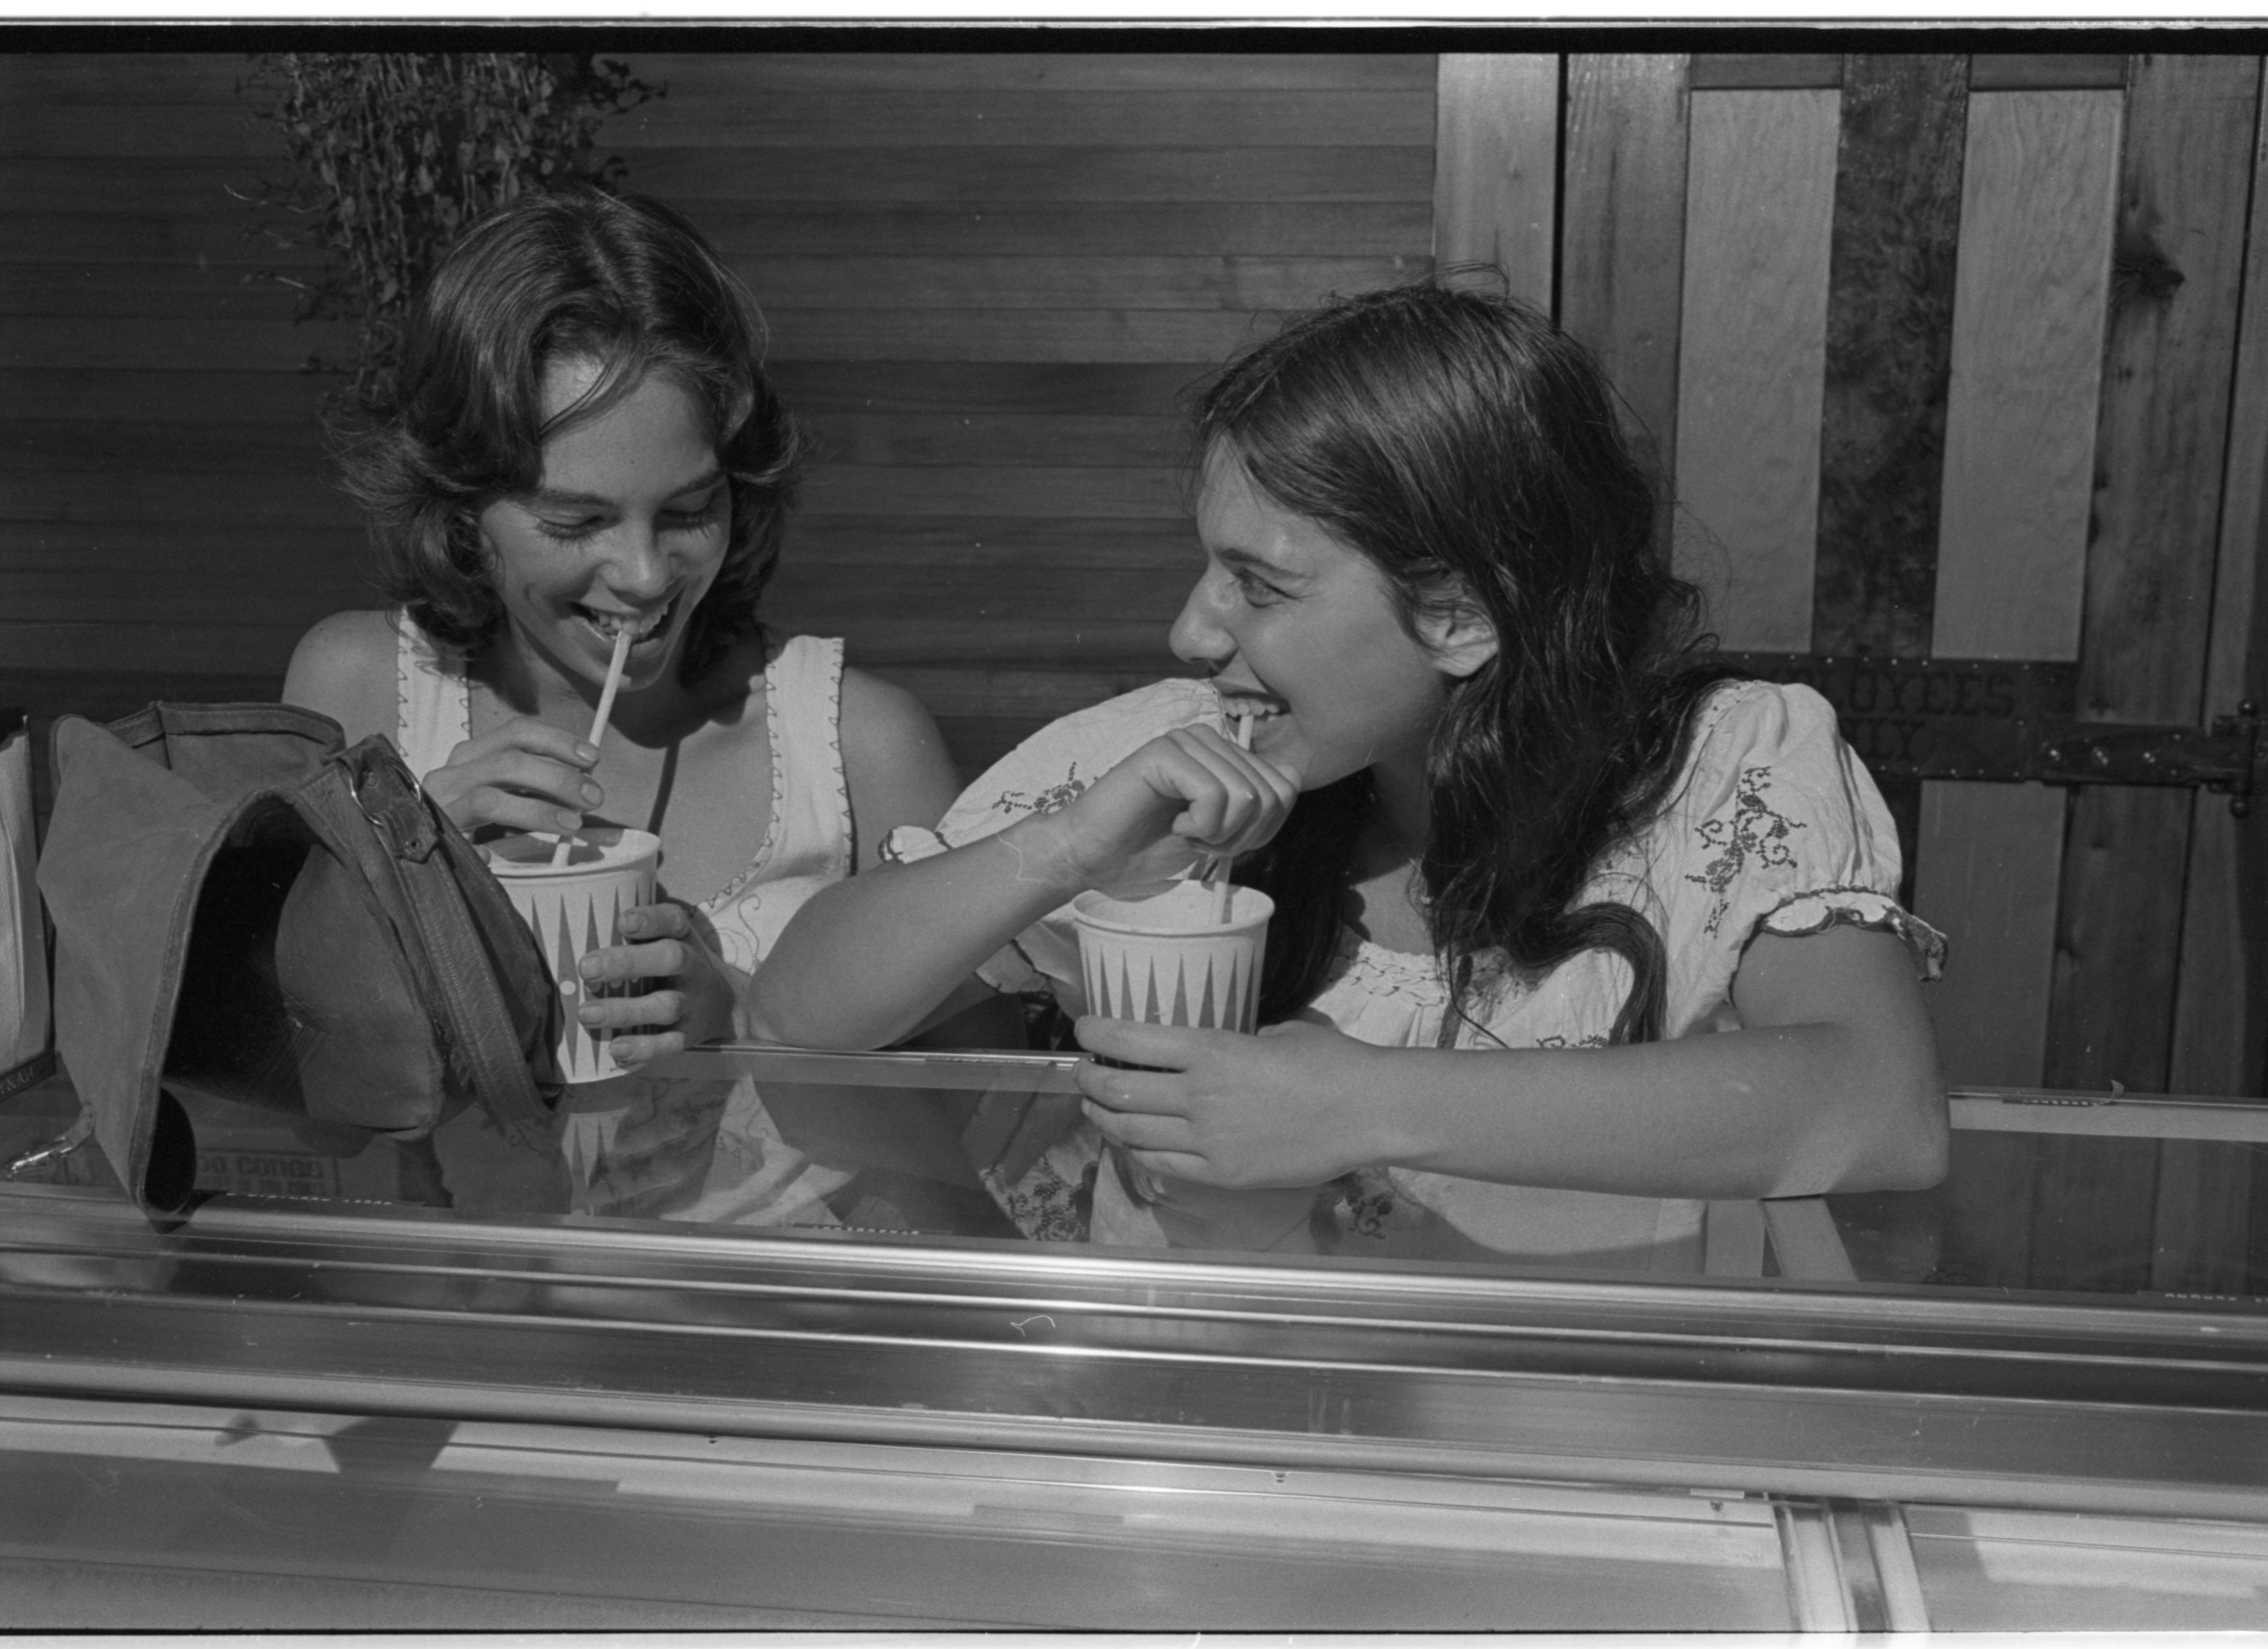 Sharing Milk Shakes At Mountain High Ice Cream Parlour, August 1974 image